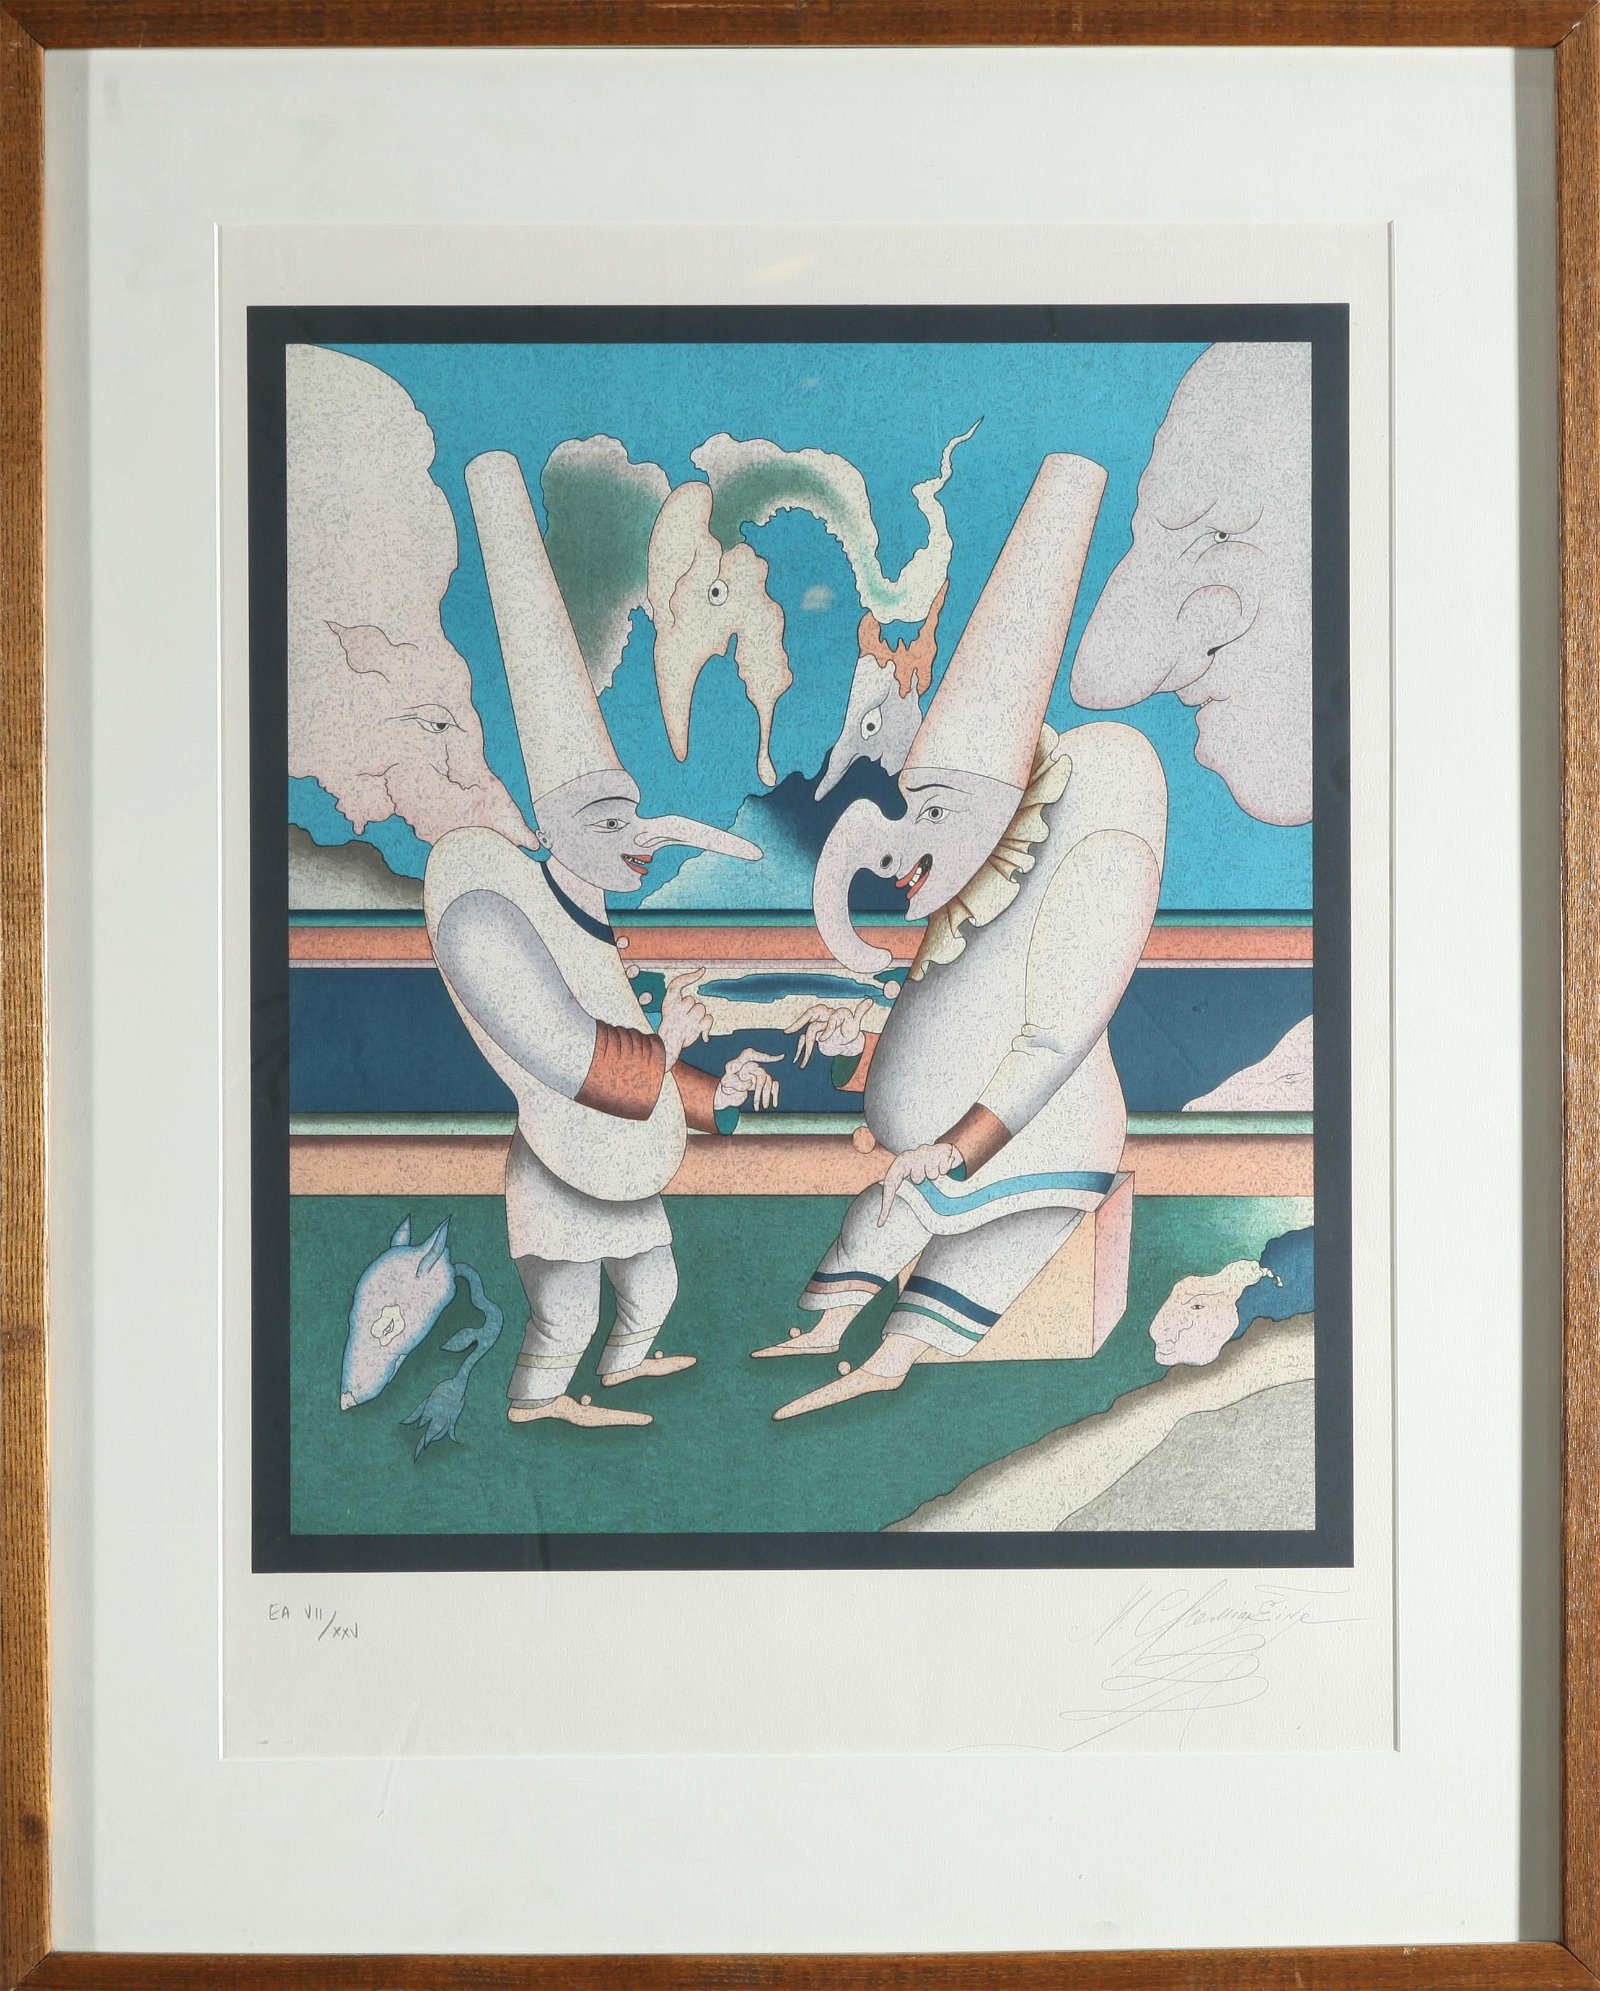 Signed M. Chemiakin Figures in Conversation Litho